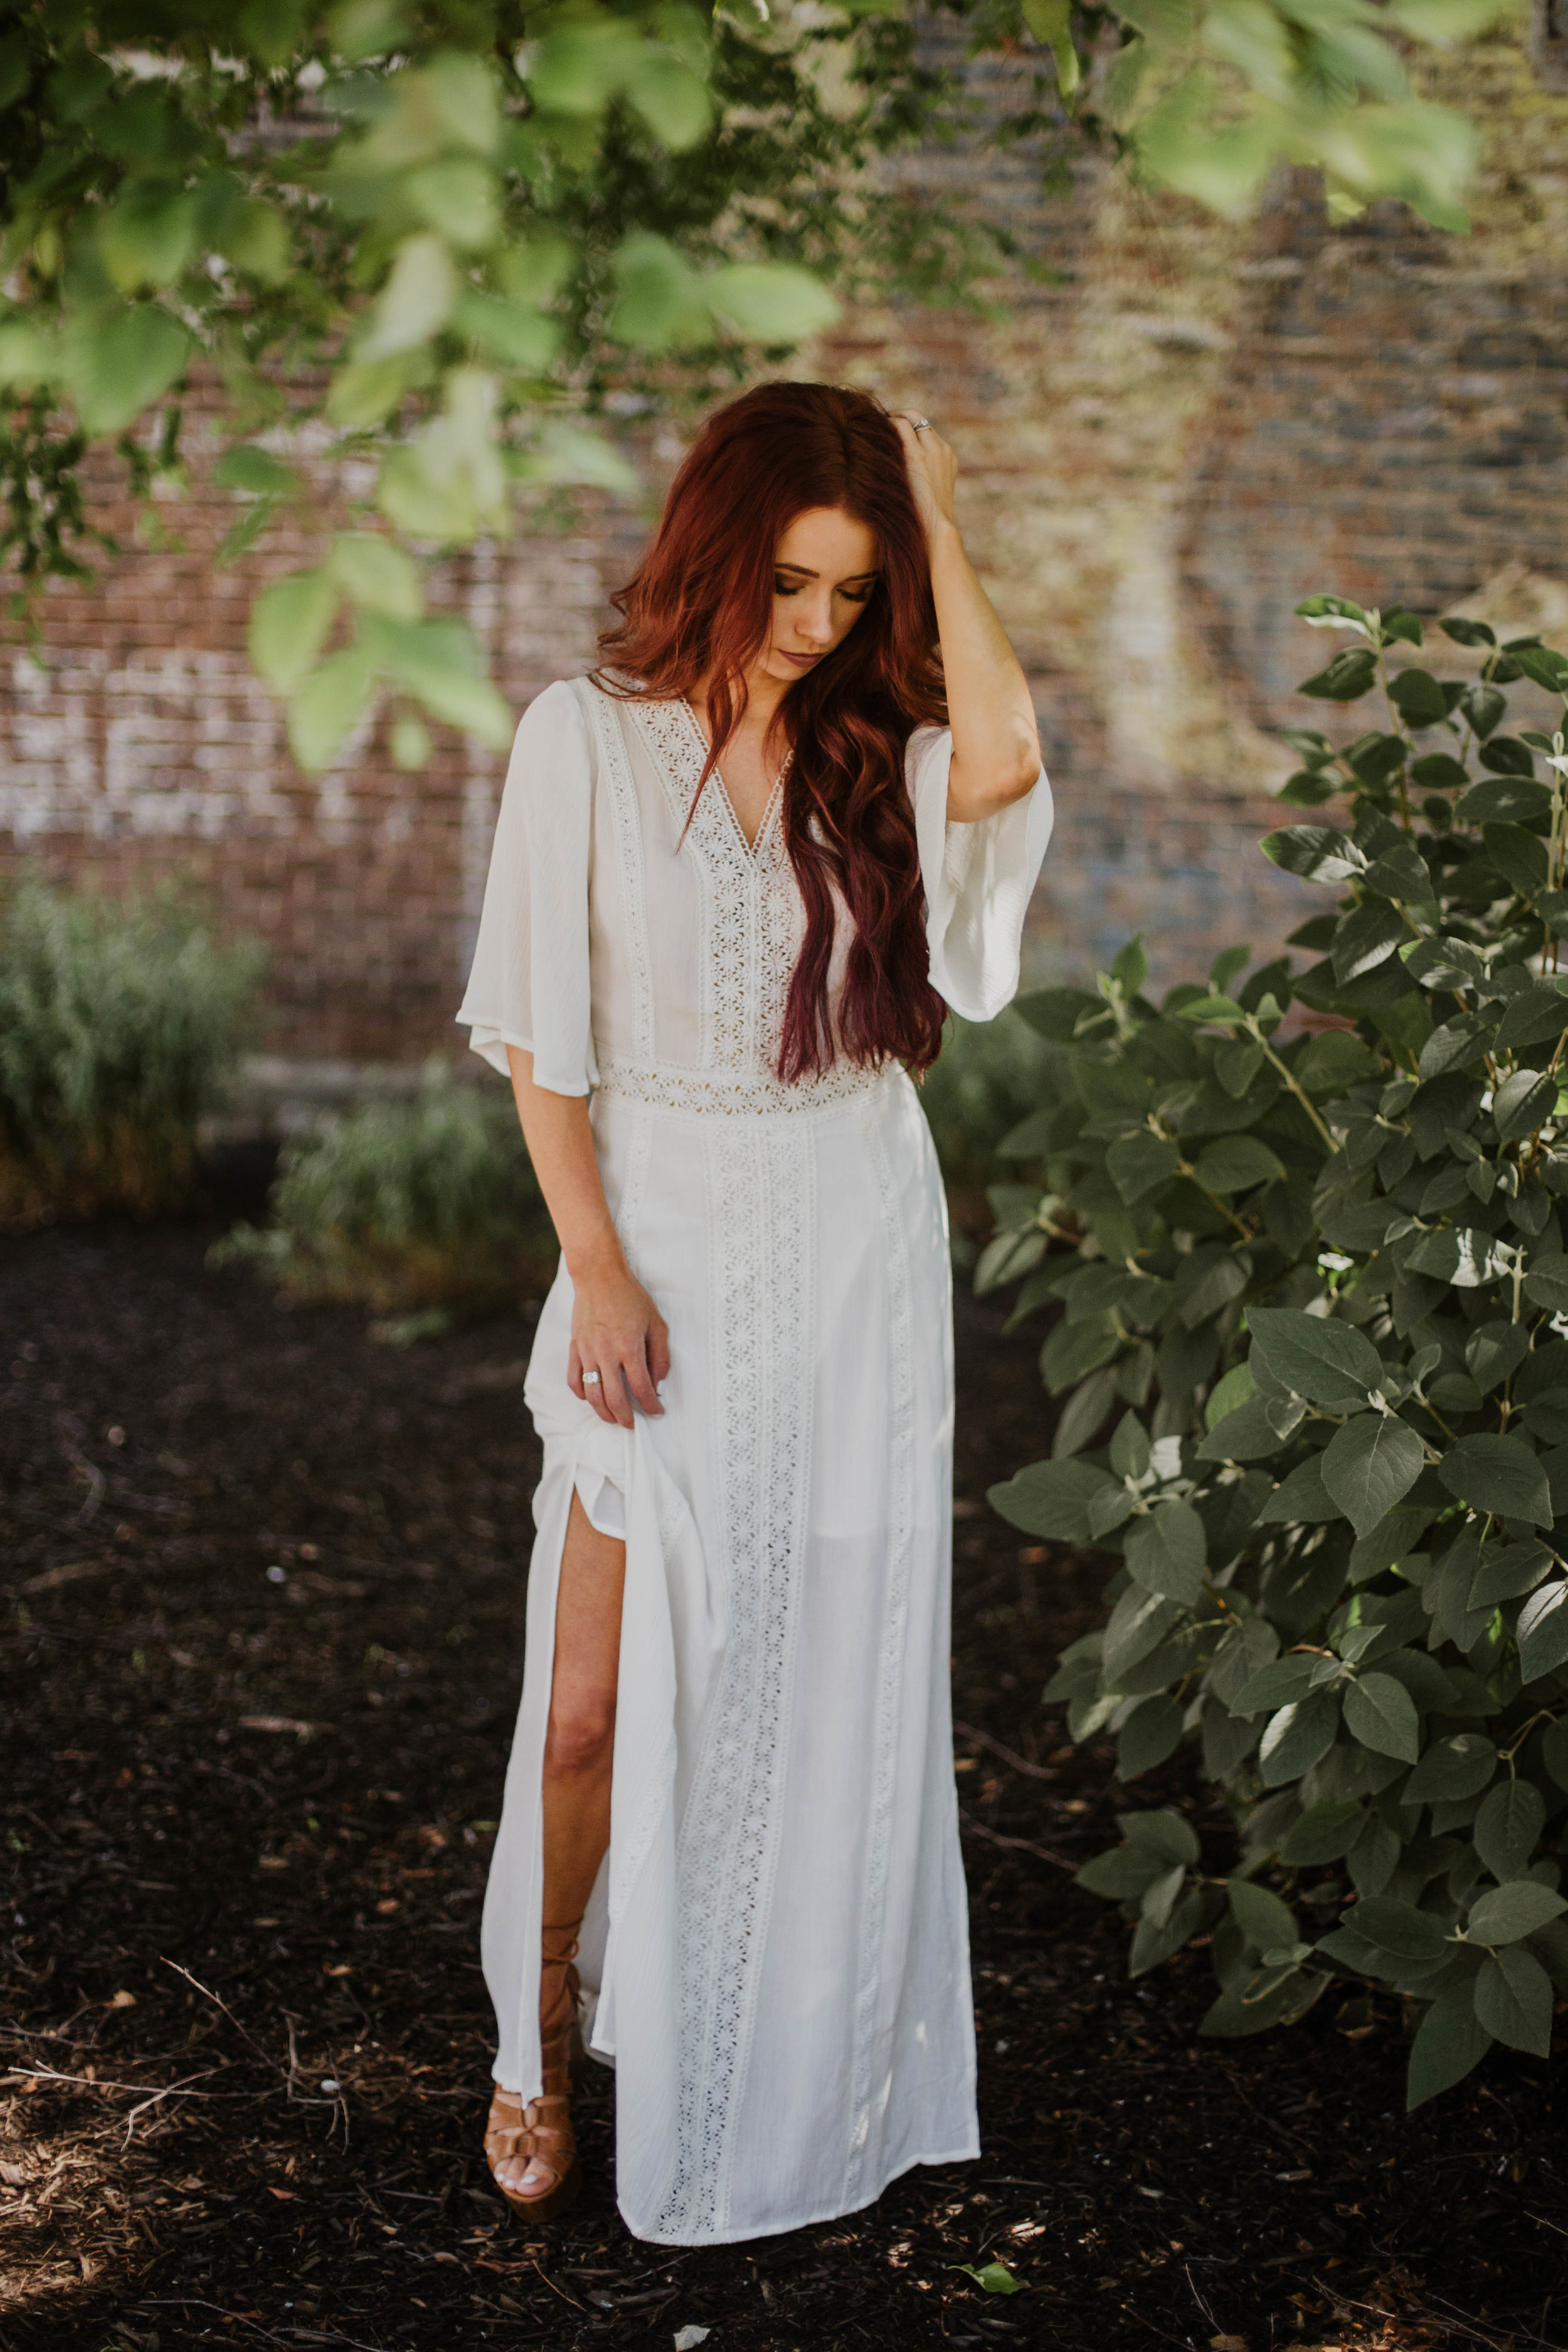 White Maxi,  Red Dress Boutique  ||  Monat Hair Care  || Extensions,  Extensions by Marie  || Photography,  DeKam Studios